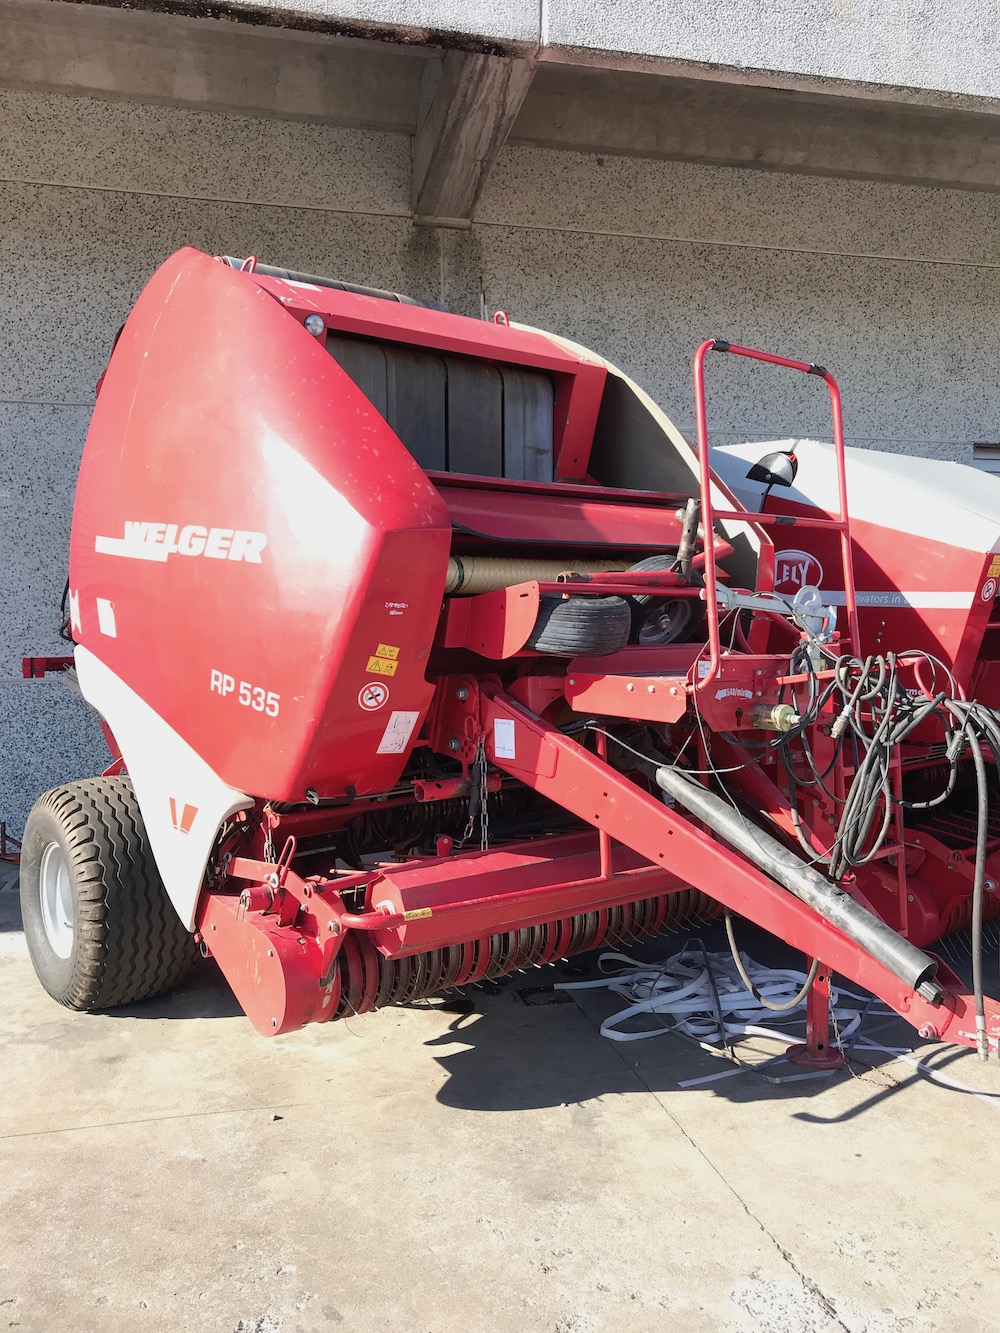 ROTOP LELY WELGER RP 535 US 19/050